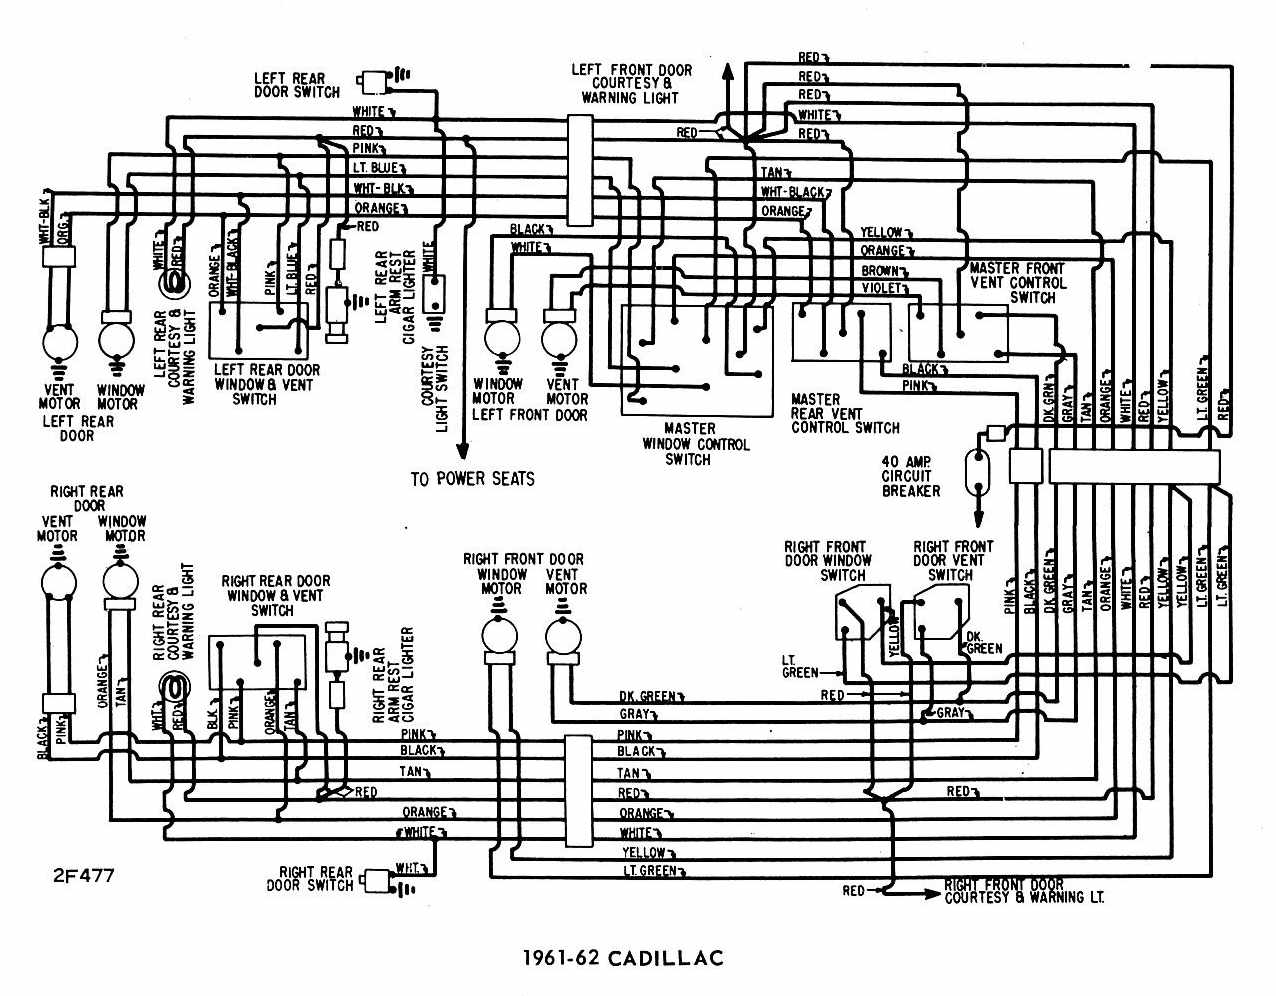 Cadillac Car Manuals Wiring Diagrams Pdf Fault Codes Stereo Diagram For Millions Download